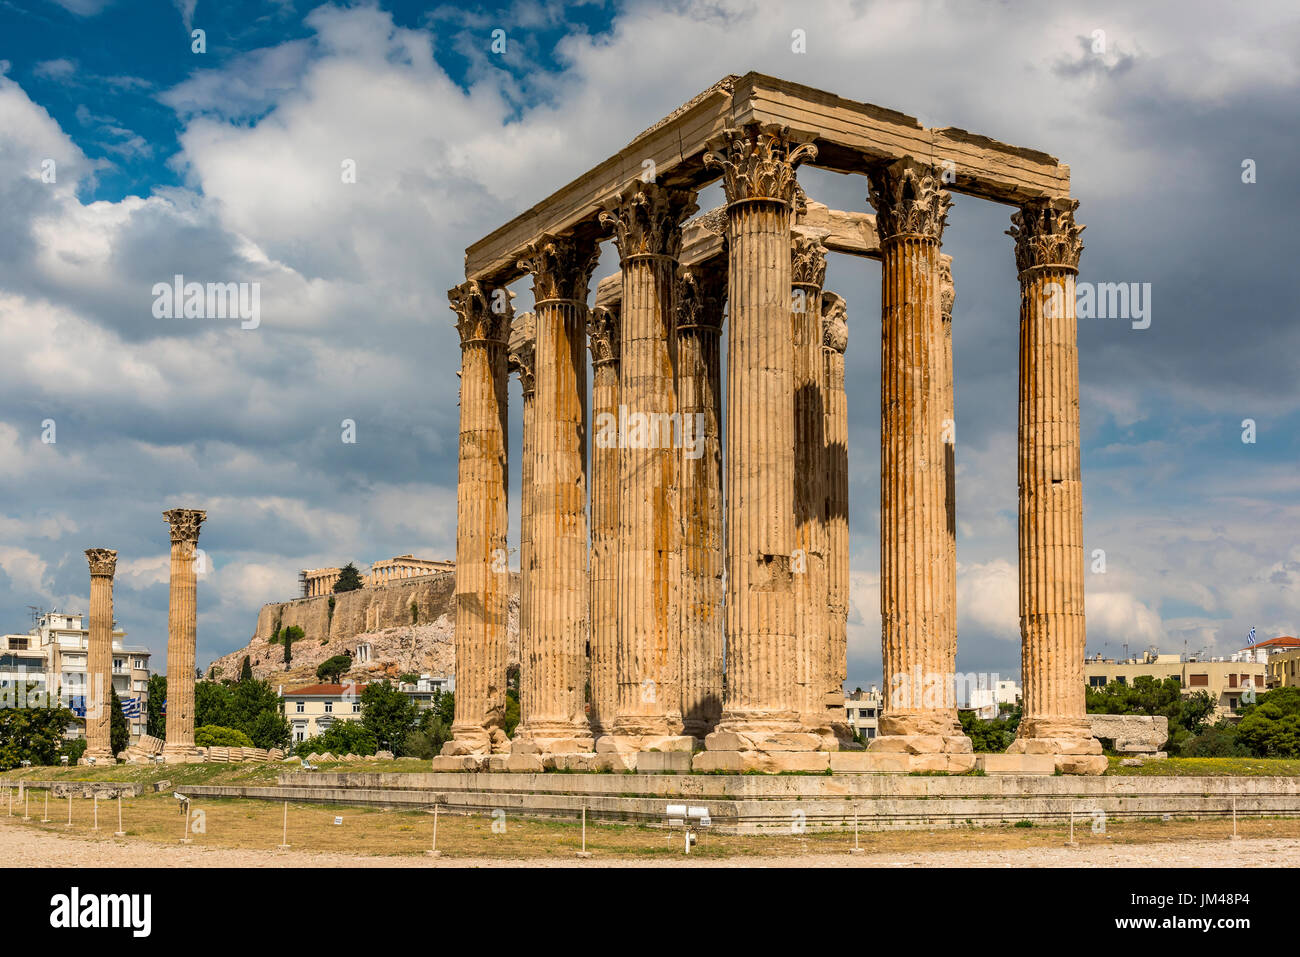 Temple of Olympian Zeus or Olympieion, Athens, Attica, Greece Stock Photo